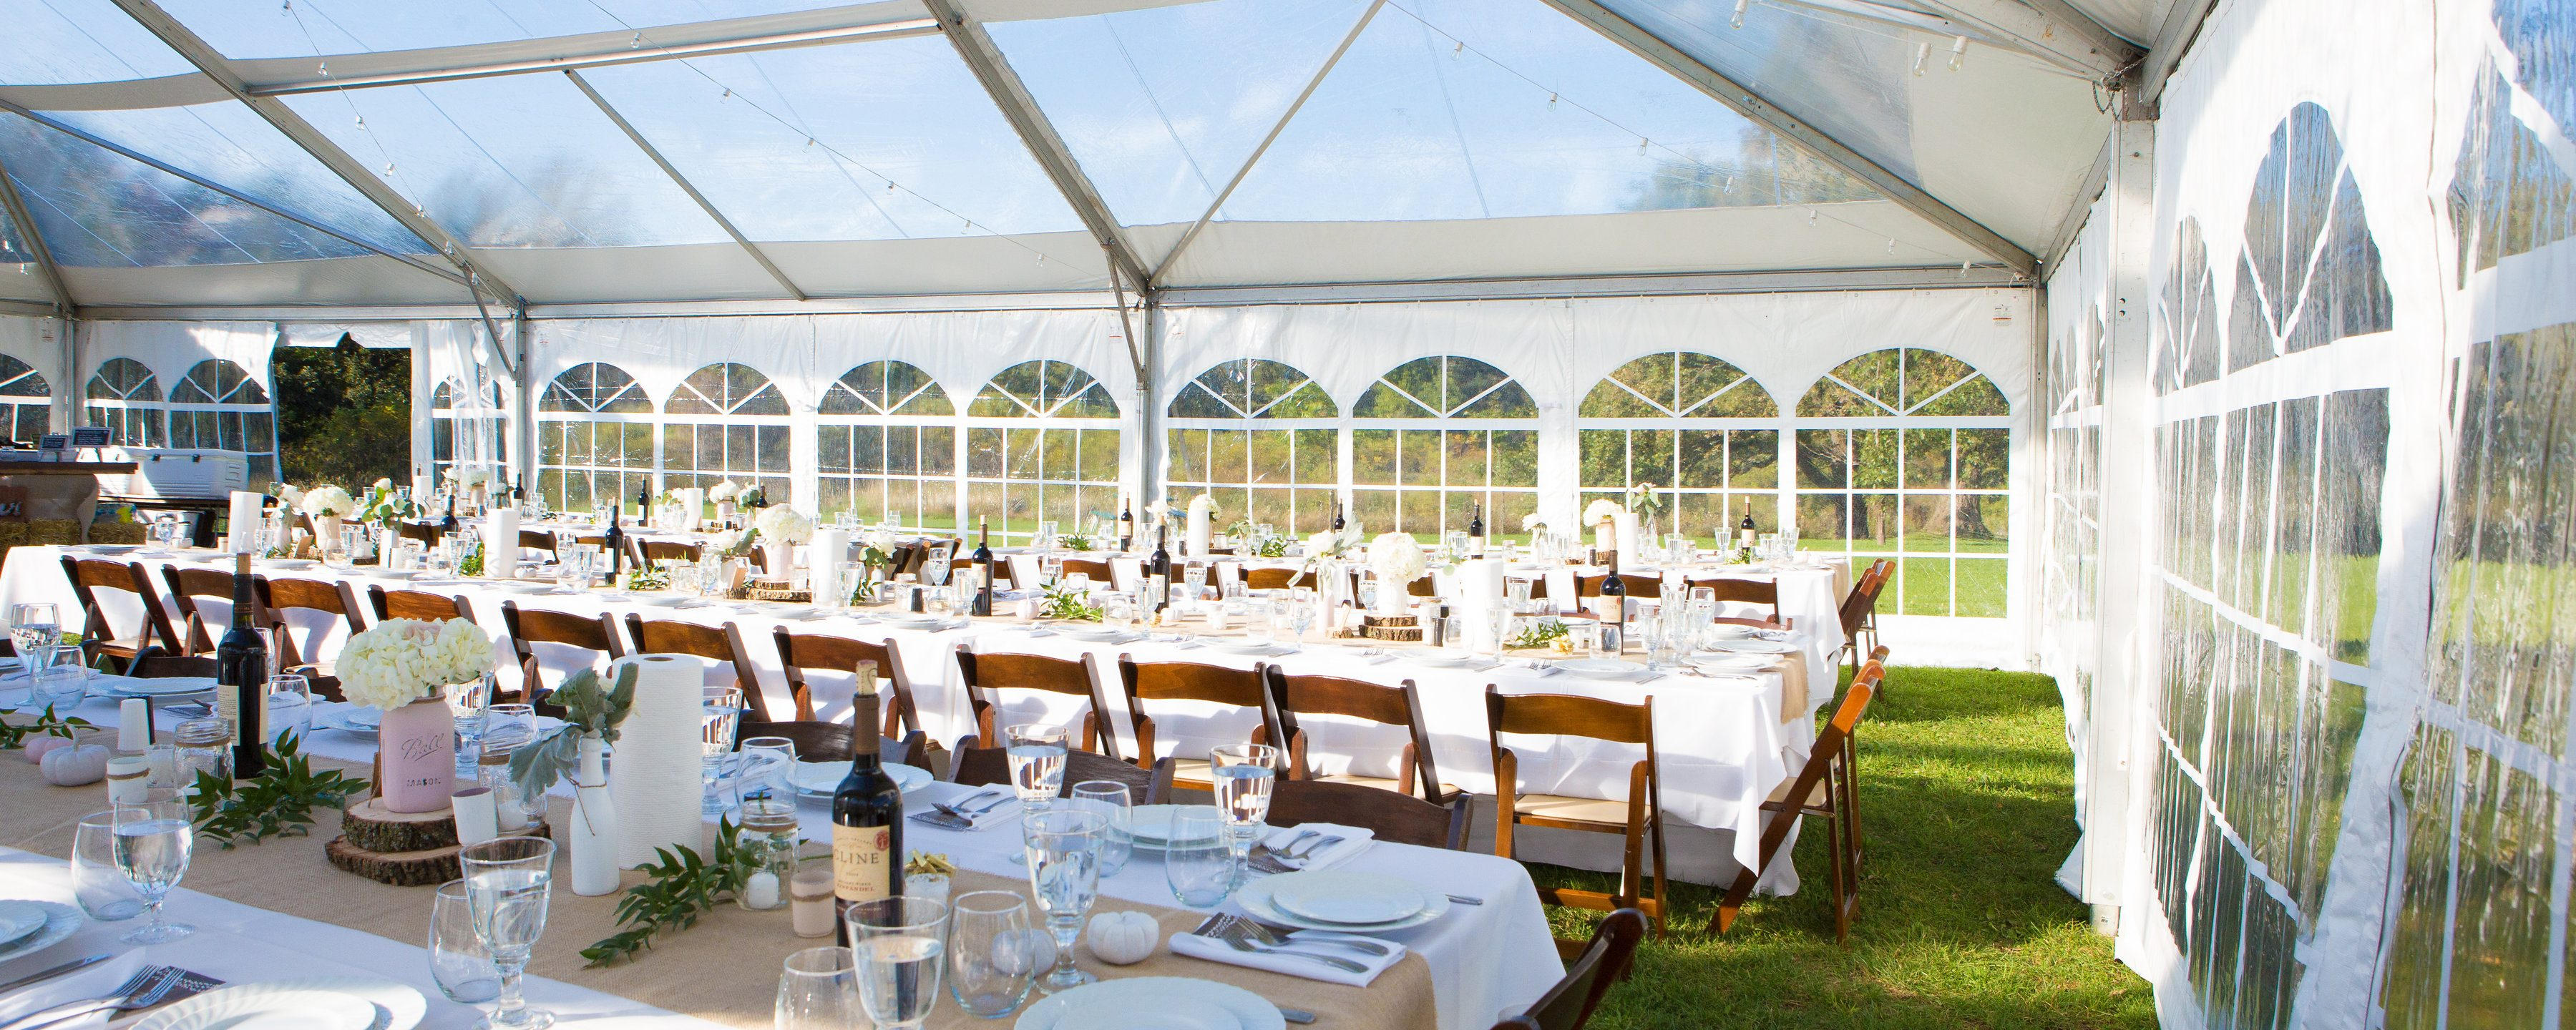 Clear tent rentals in miami